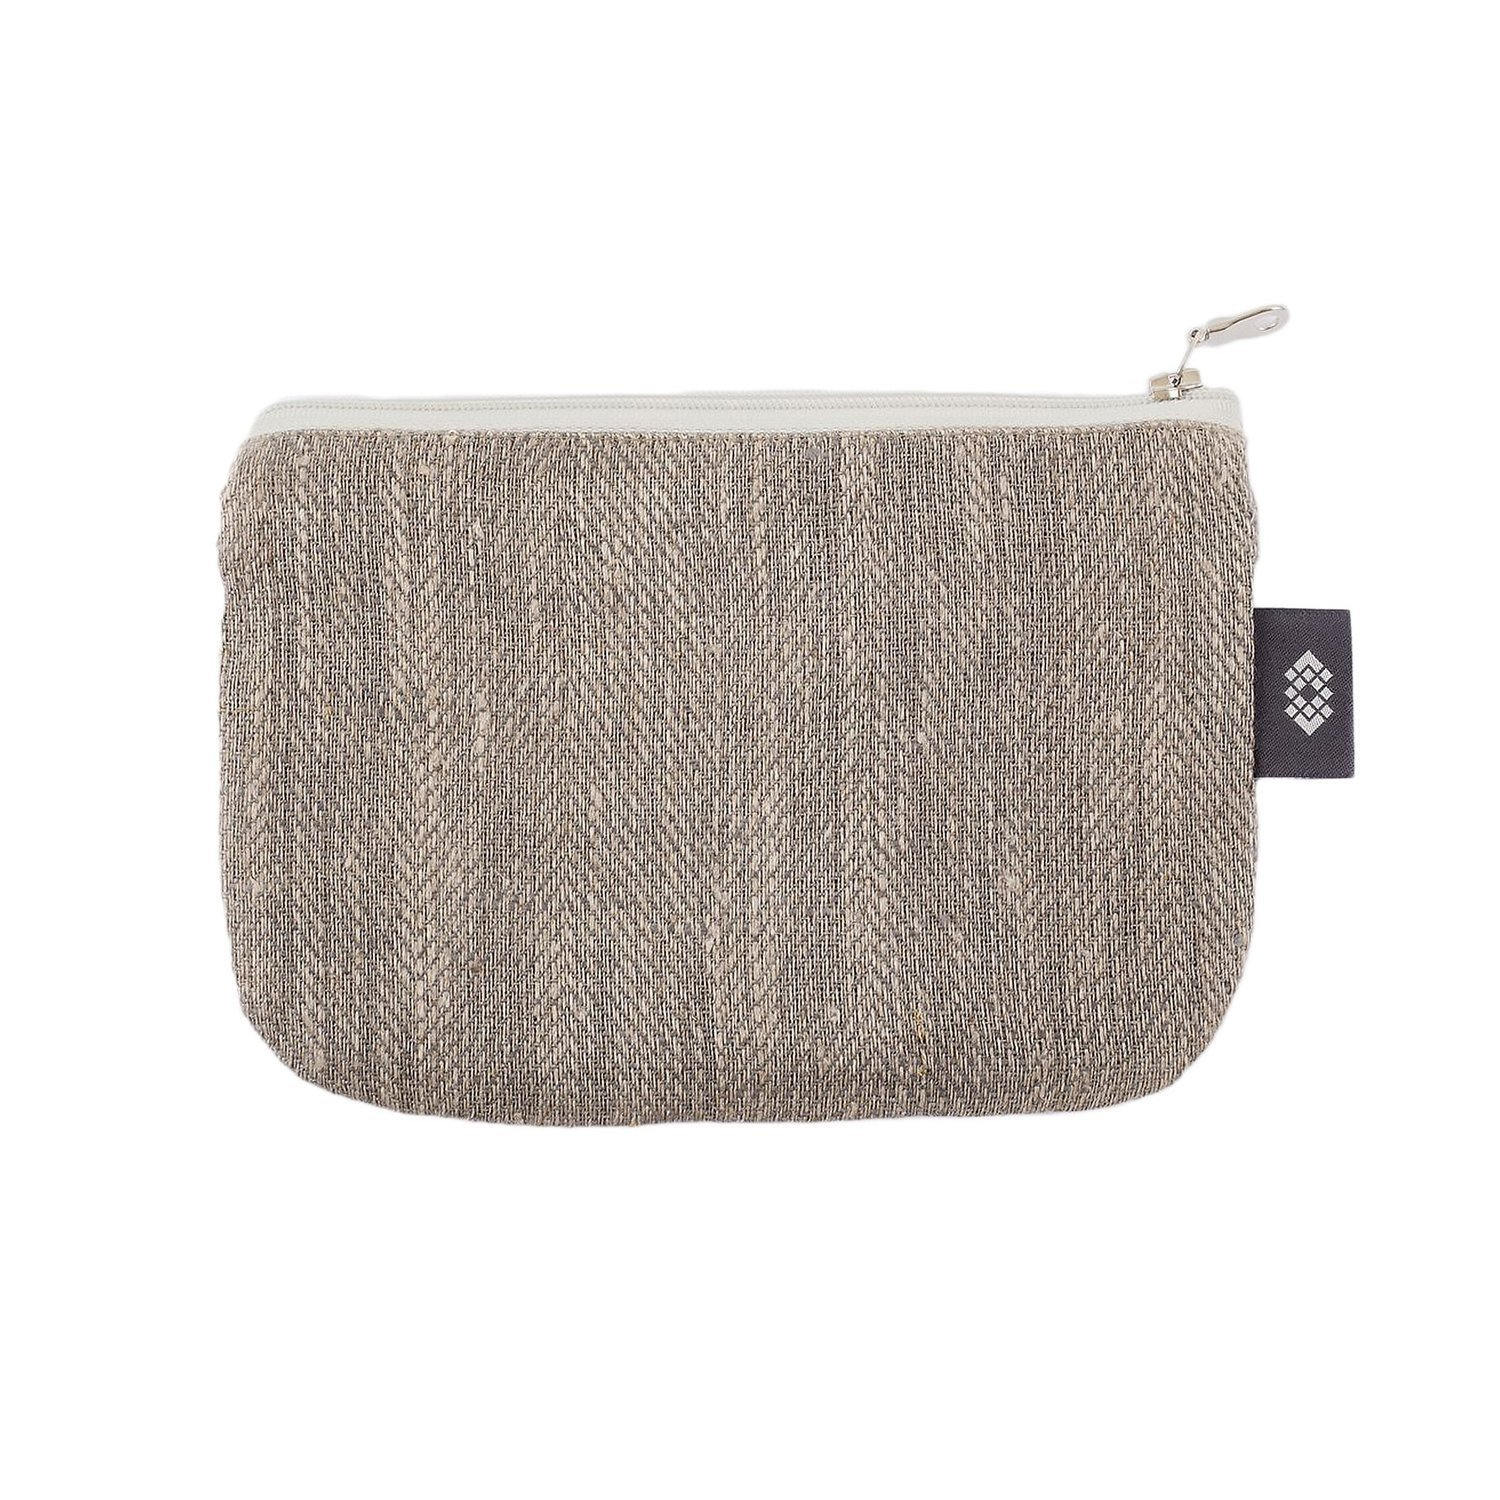 Gray 100% Linen Pencil Case - 5x7 inch Pouch Bag, by ThingStore